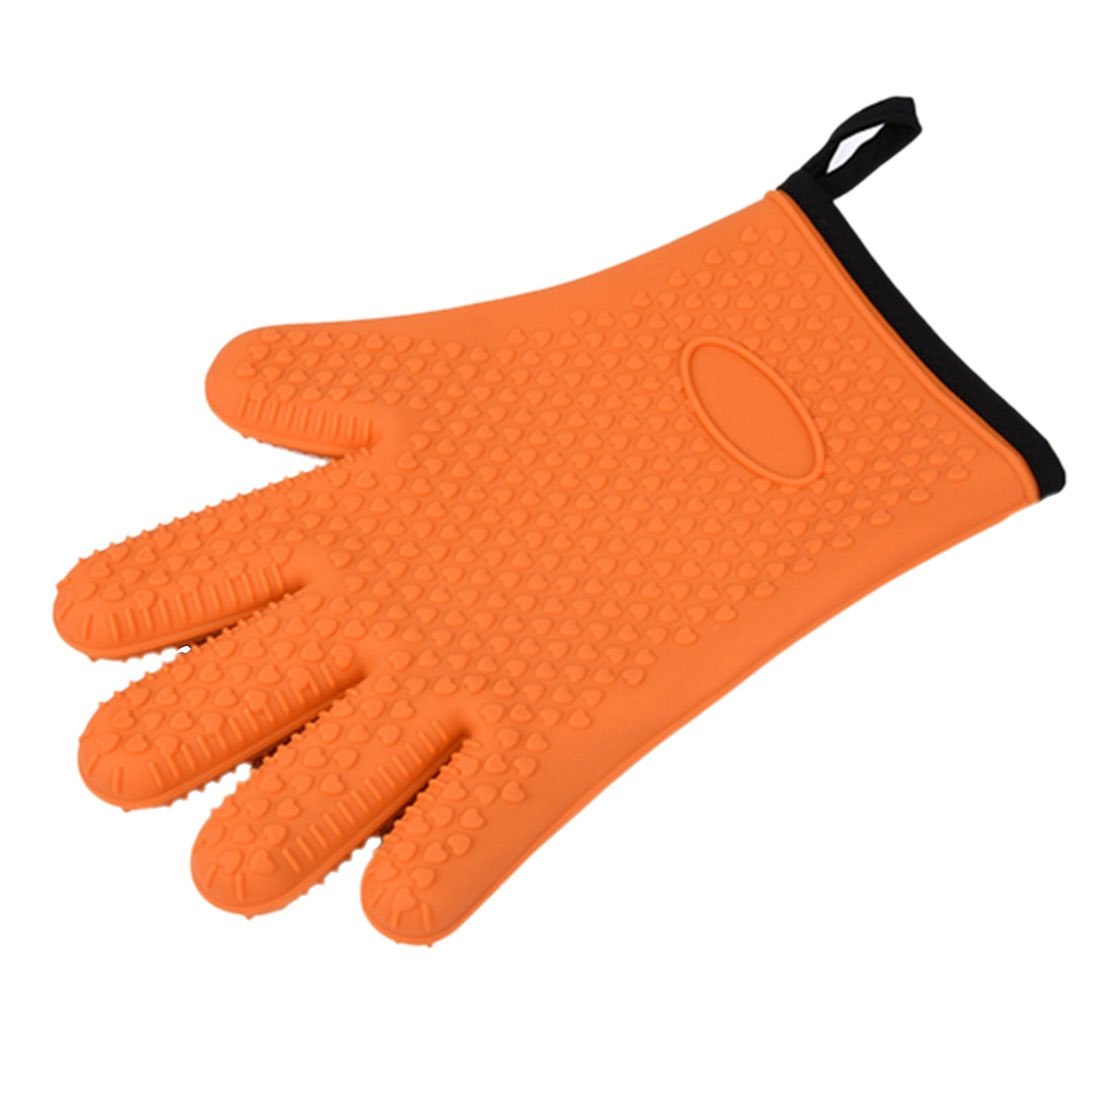 (Blue) - Blue Heat-Resistant Silicone Gloves with Cotton Interior Liner B07283HNGF オレンジ オレンジ